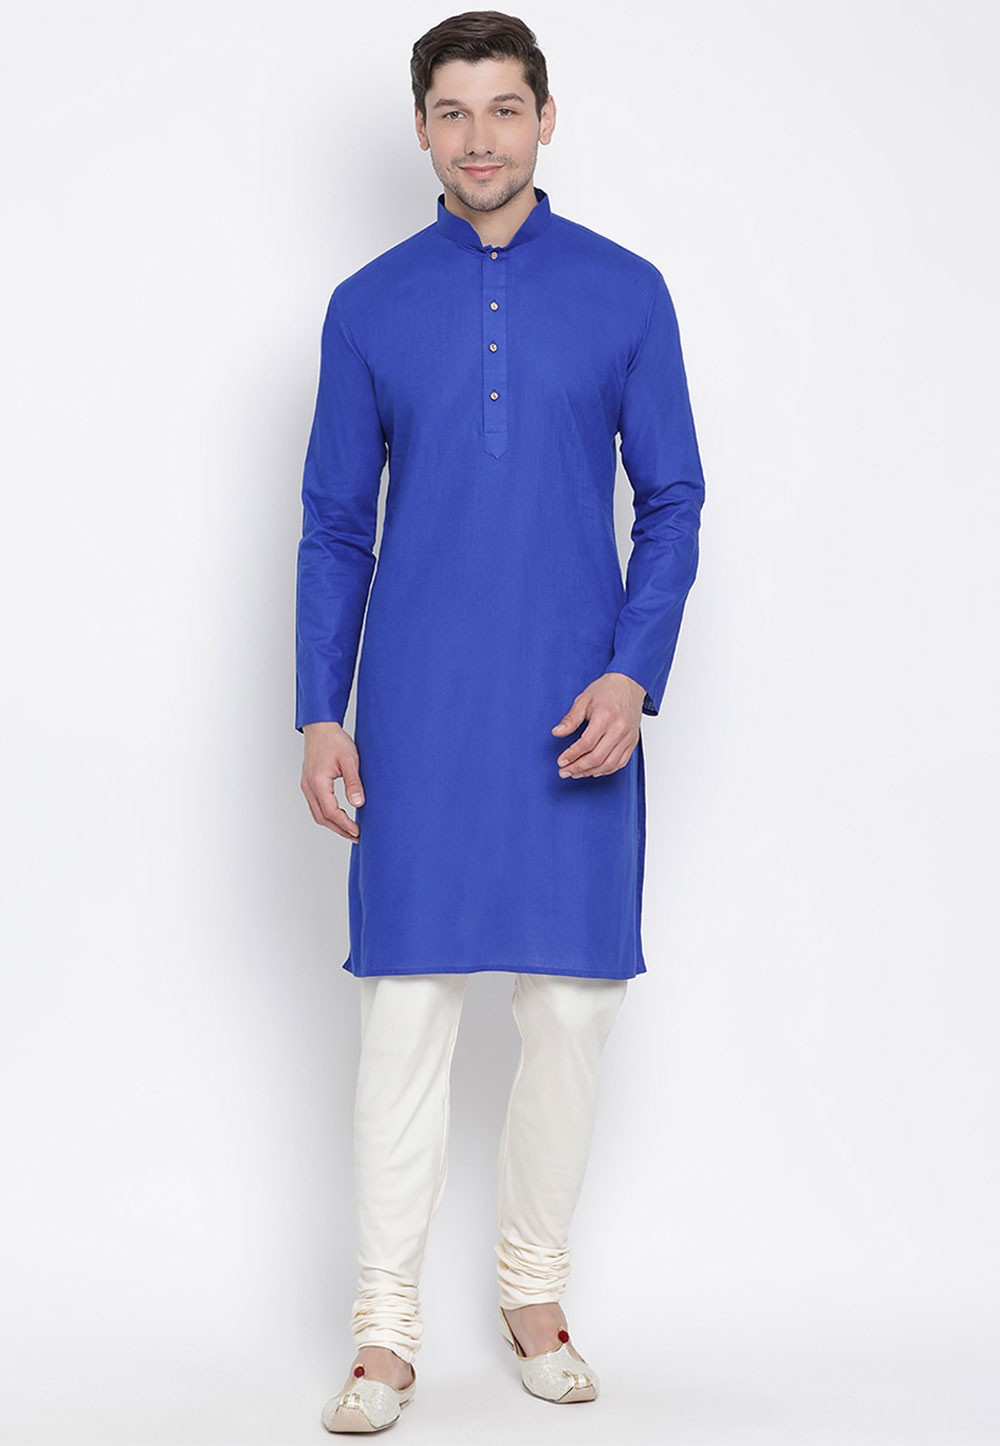 Royal Blue Color Men's Kurta Pyjama.